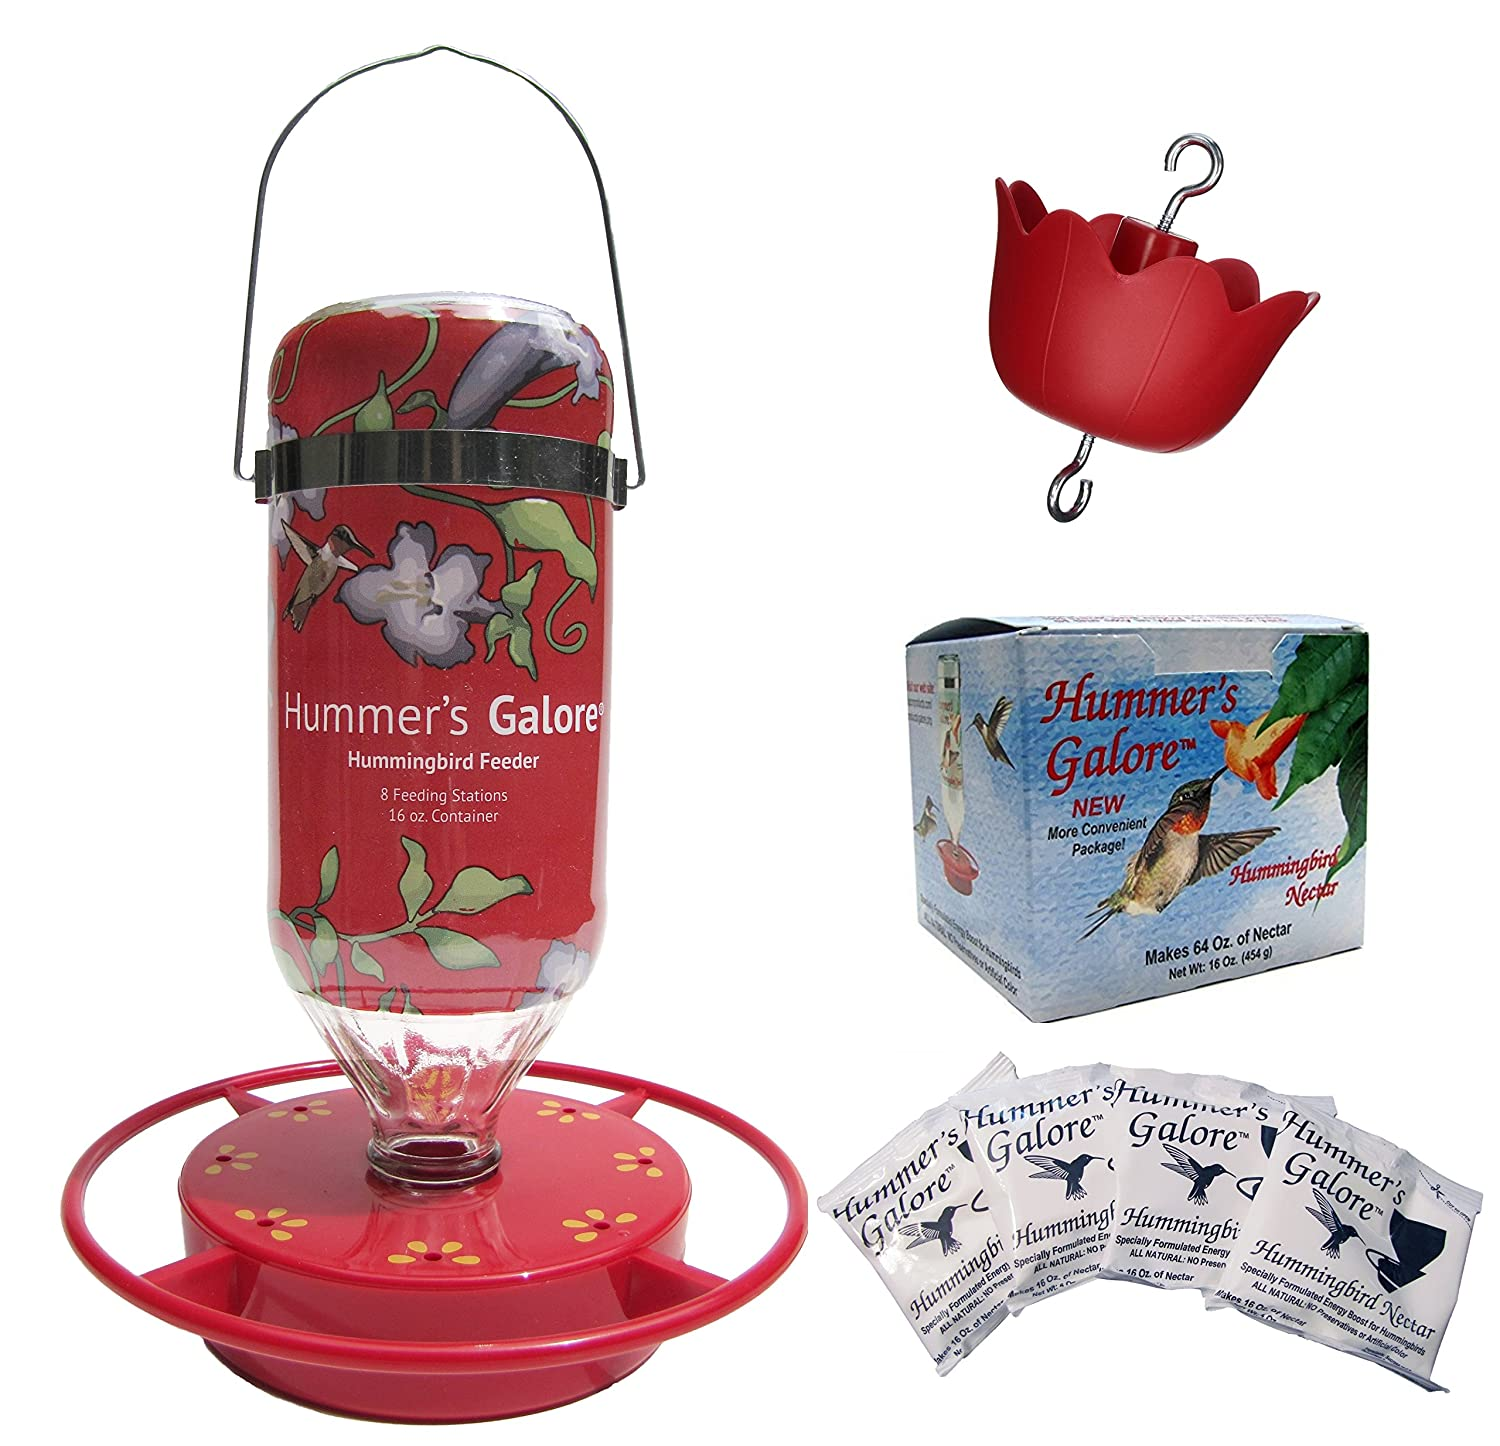 Amazon.com : Hummers Galore, Bonus: Hummingbird Feeder, 64 oz Nectar, Base and Ant Guard, 16 oz Hanging Glass Feeder - 4 Piece Gift Set : Patio, ...